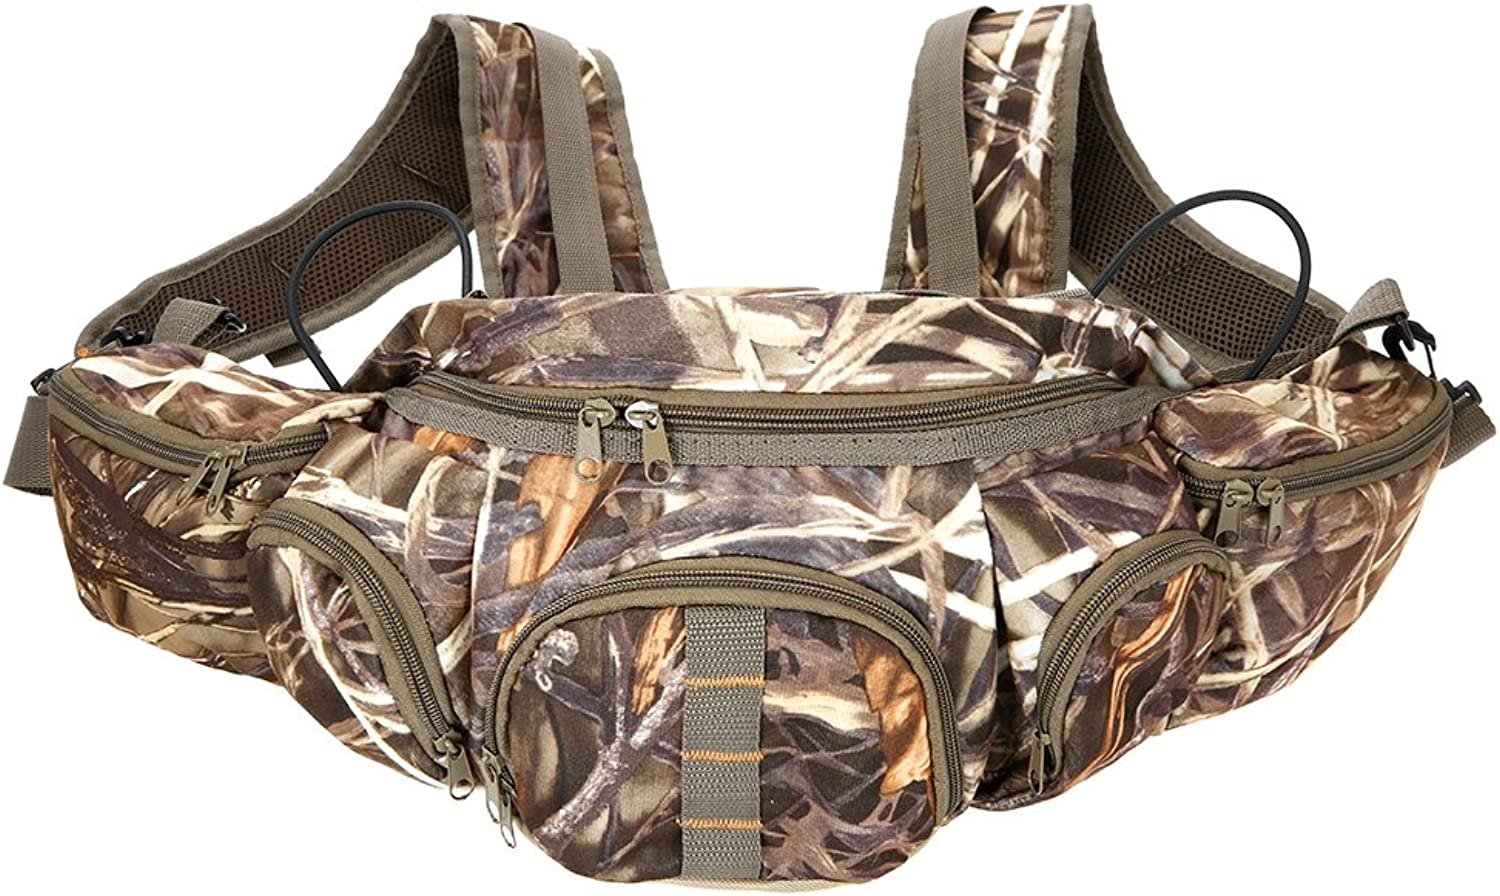 Walmeck Multifunctional Outdoor Waist Bag Climbing Camouflage Bag for Outdoor Hiking Fishing Camping Sports Hunting Fanny Pack